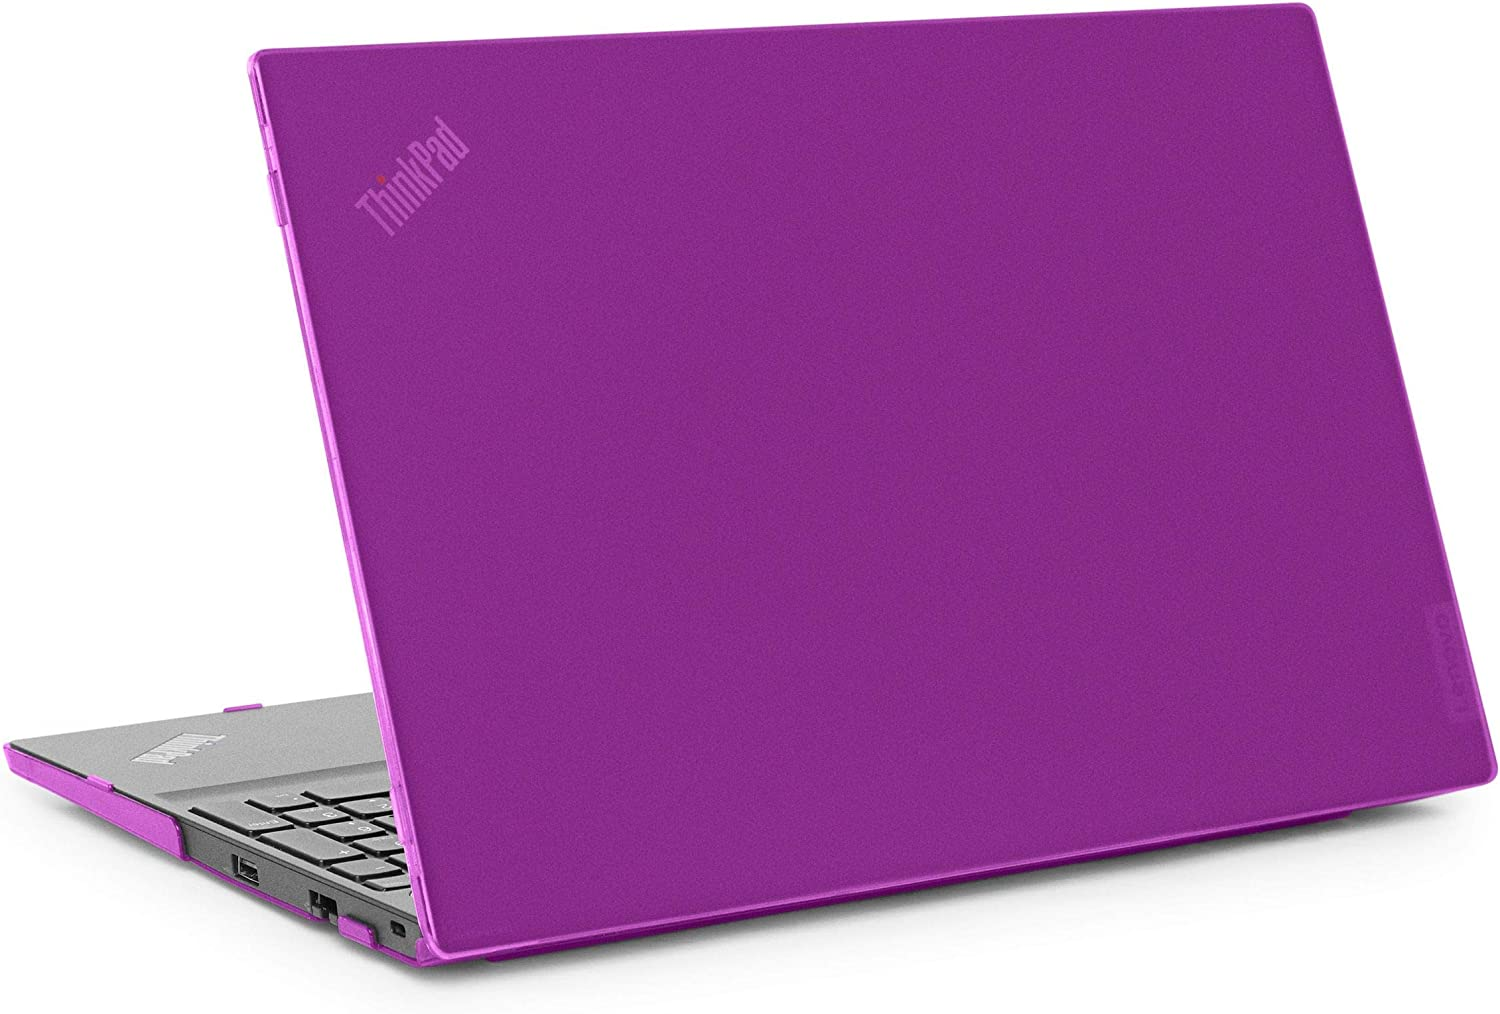 mCover Hard Shell Case for 2020 Lenovo ThinkPad E15 AMD Gen 2 15.6-inch Laptop Computers ( NOT Fitting Other Lenovo laptops ) - LENOVO-ThinkPad-E15-G2 Purple